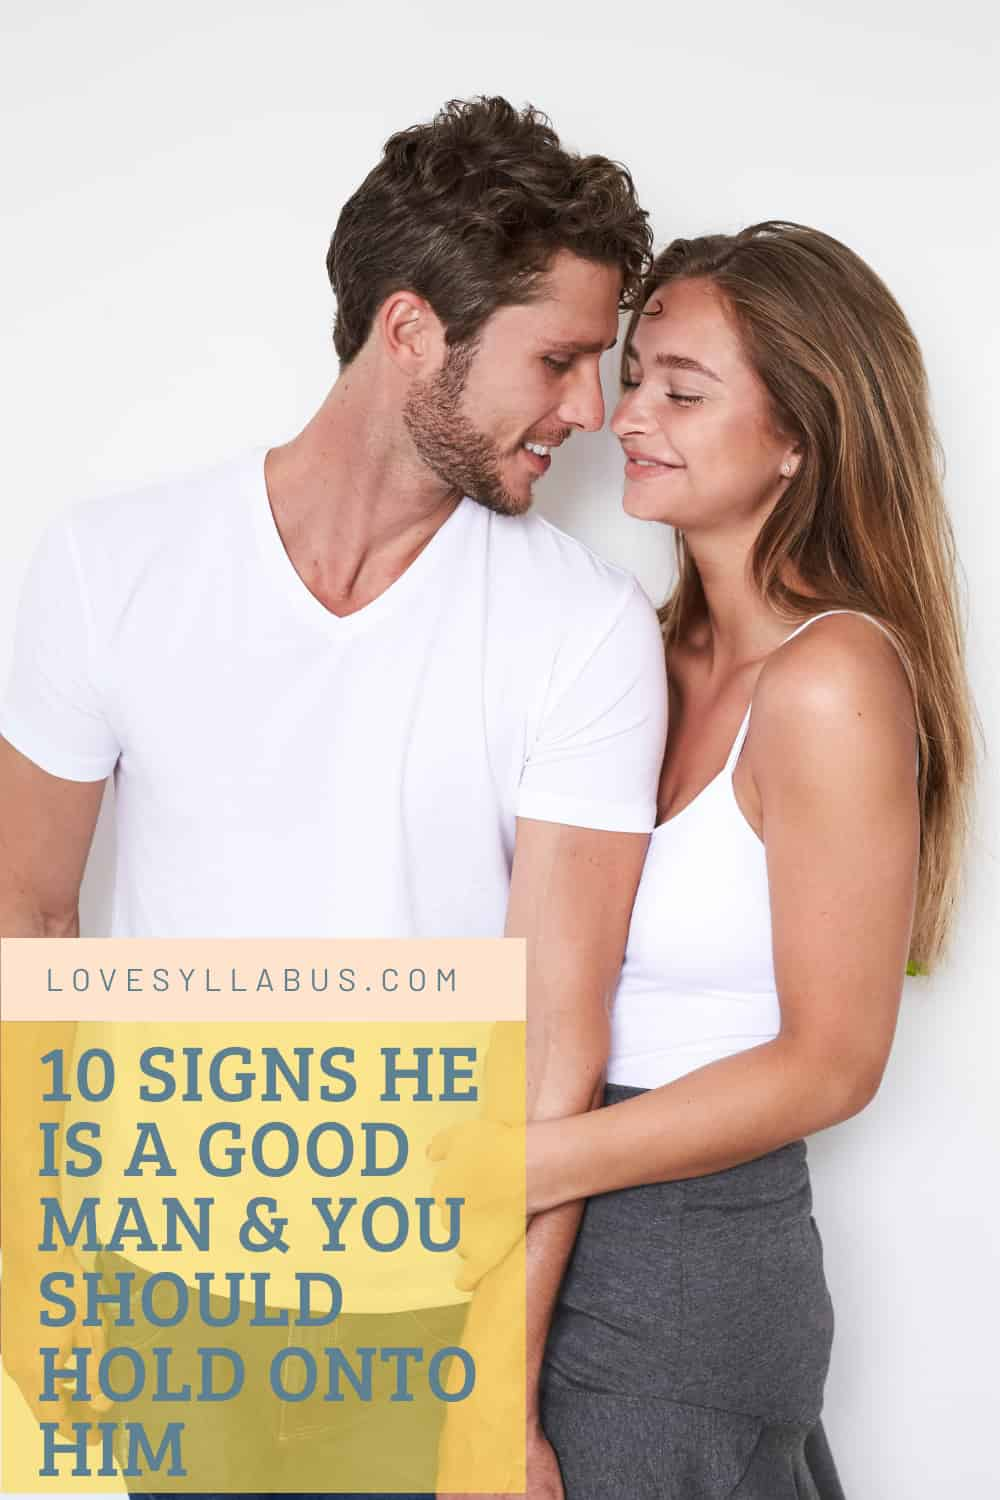 10 Signs He Is A Good Man & You Should Hold Onto Him